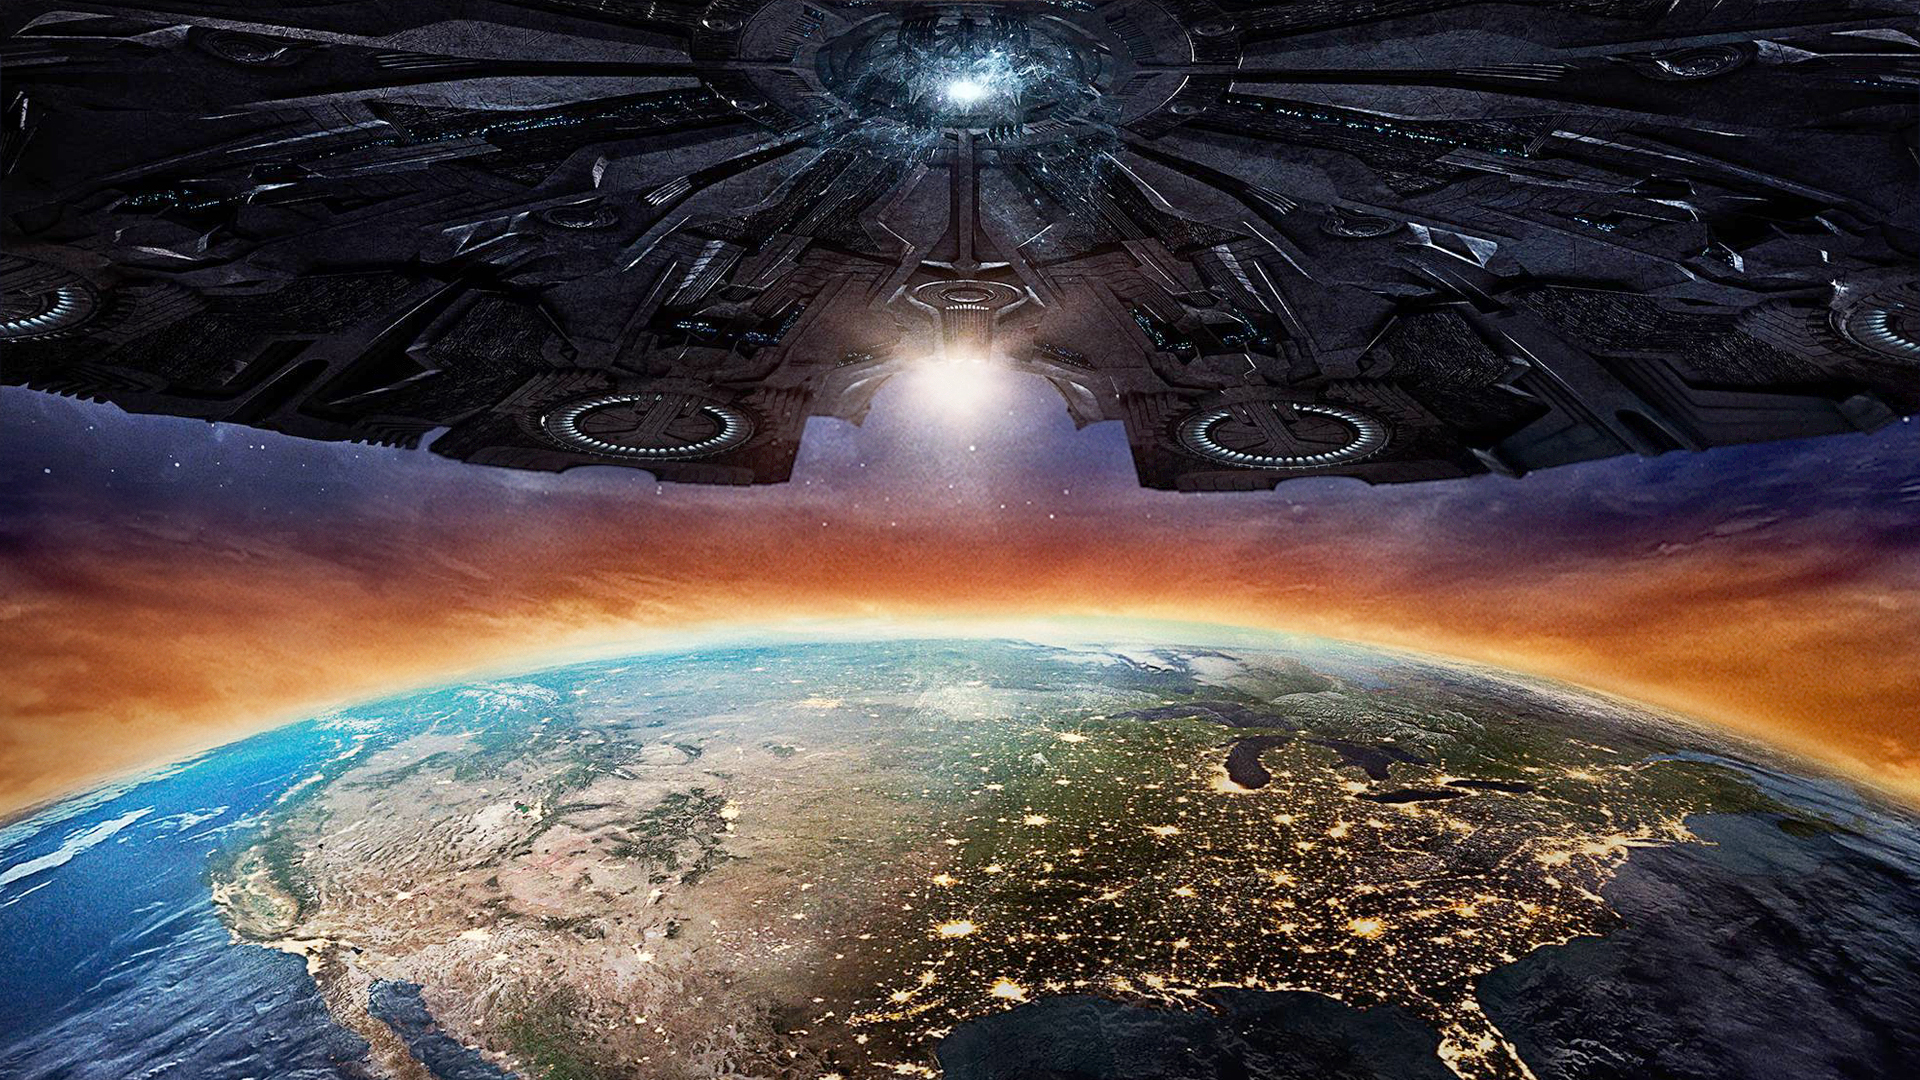 Independence Day: Resurgence has got people thinking aliens walk among us